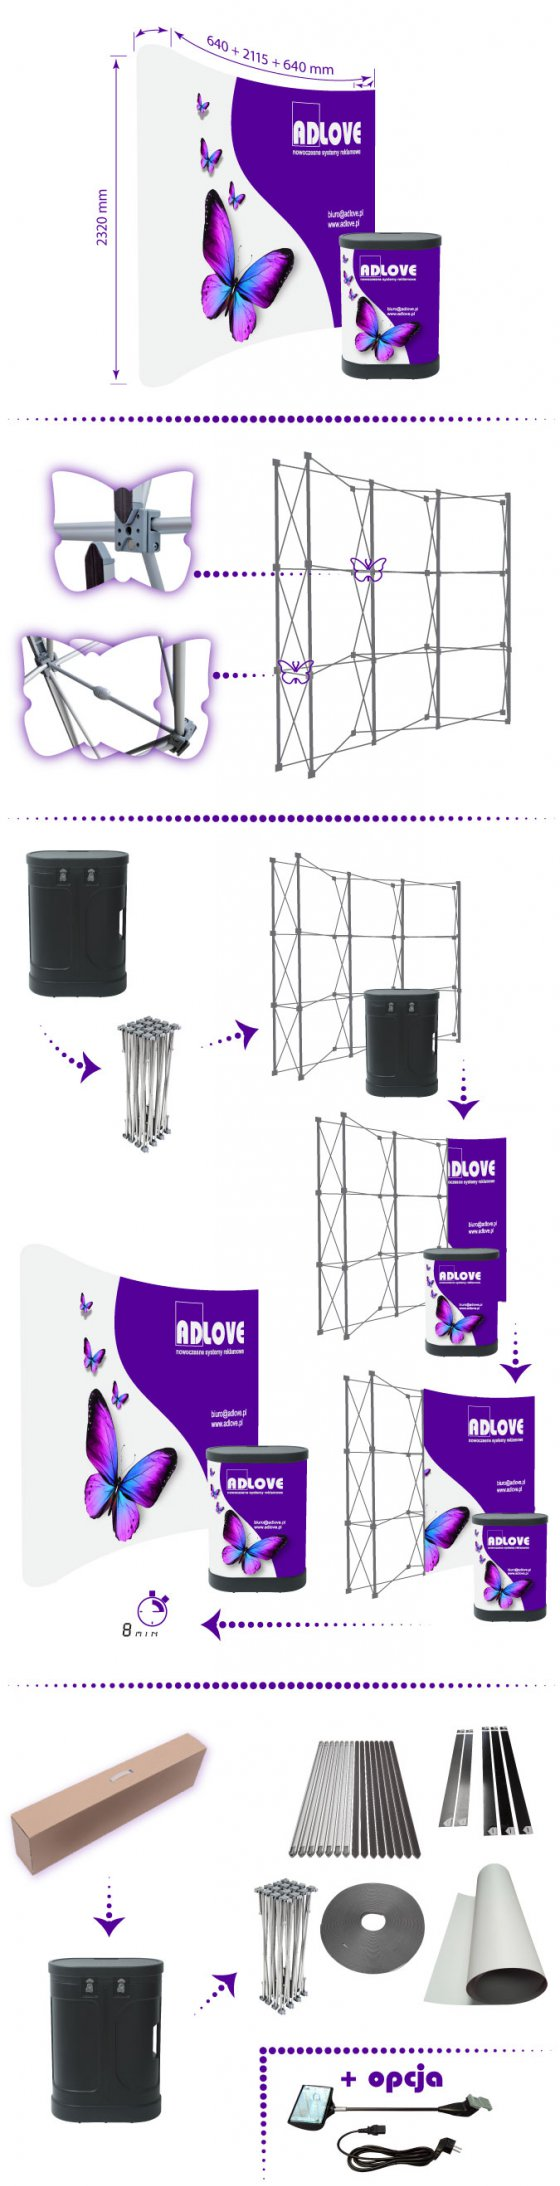 PopUp SET Wall 3x3 Curved